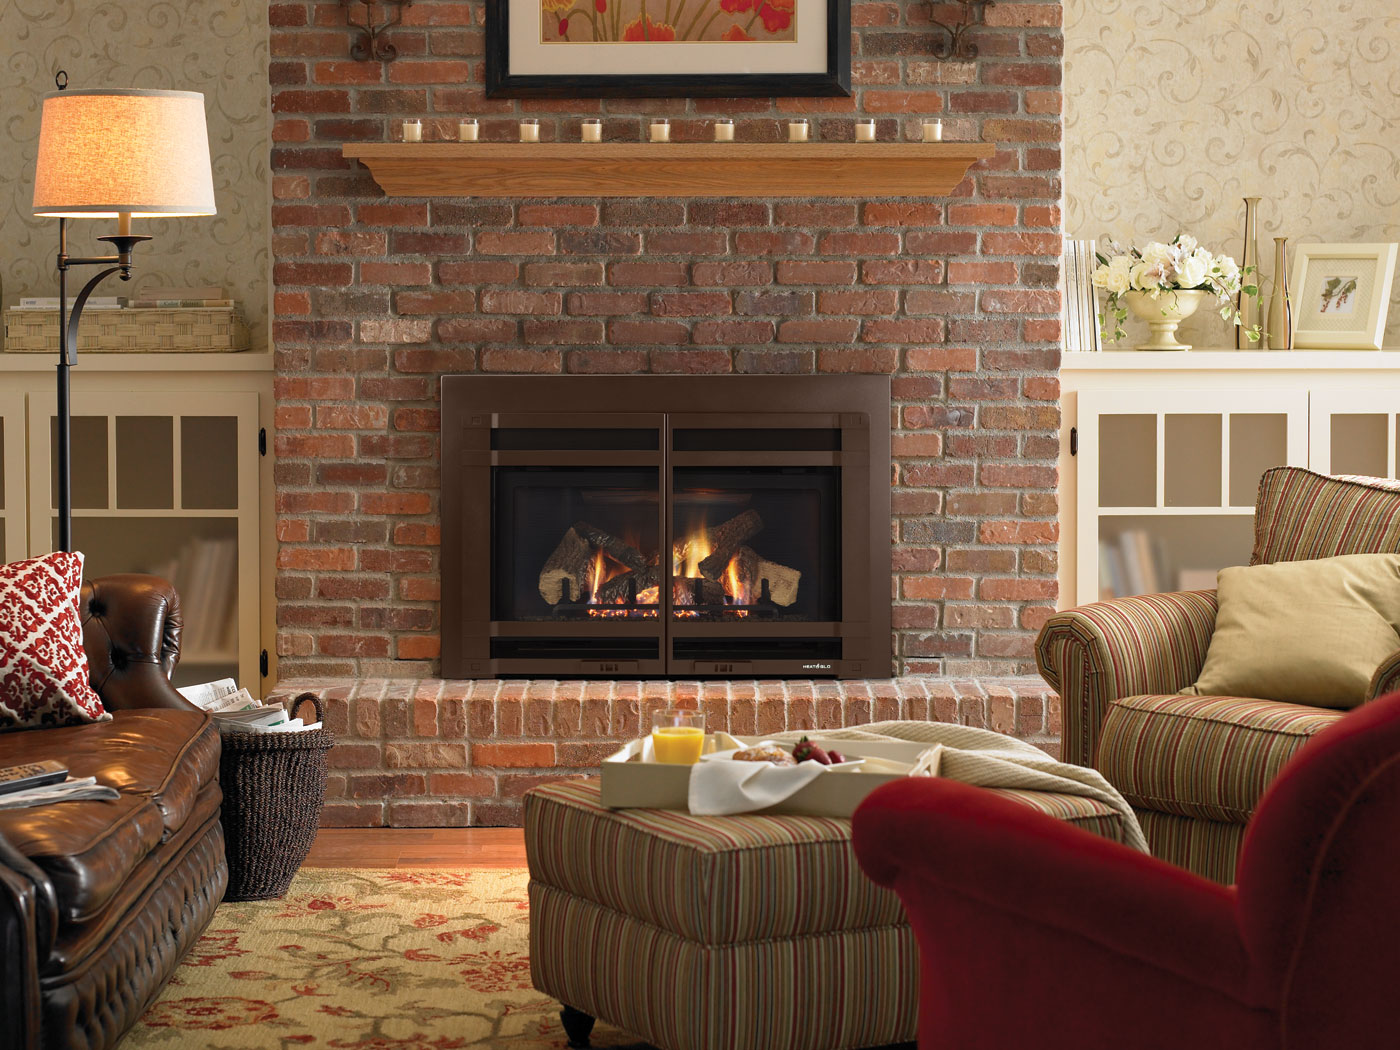 bn baa brick and stone fireplace cleaner awesome brick fireplace